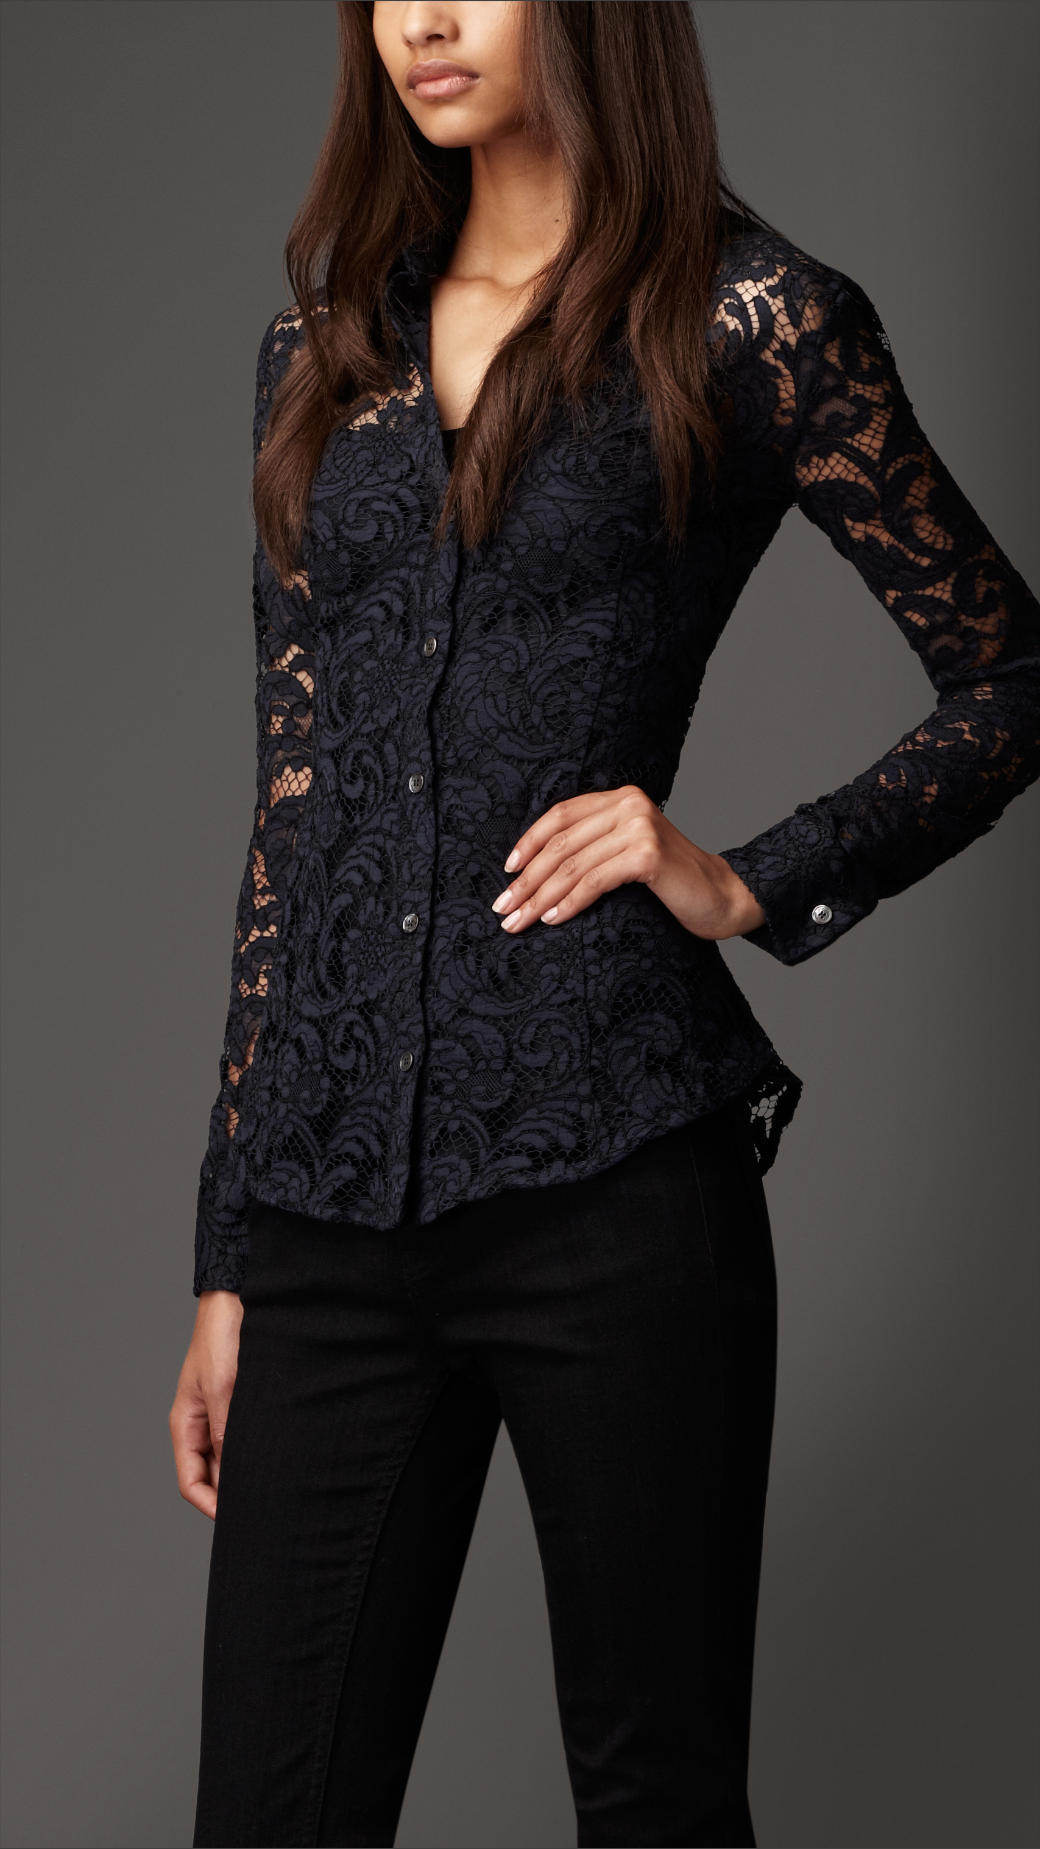 bd25d8a1c7ef1 Burberry Fitted Lace Shirt in Black - Lyst